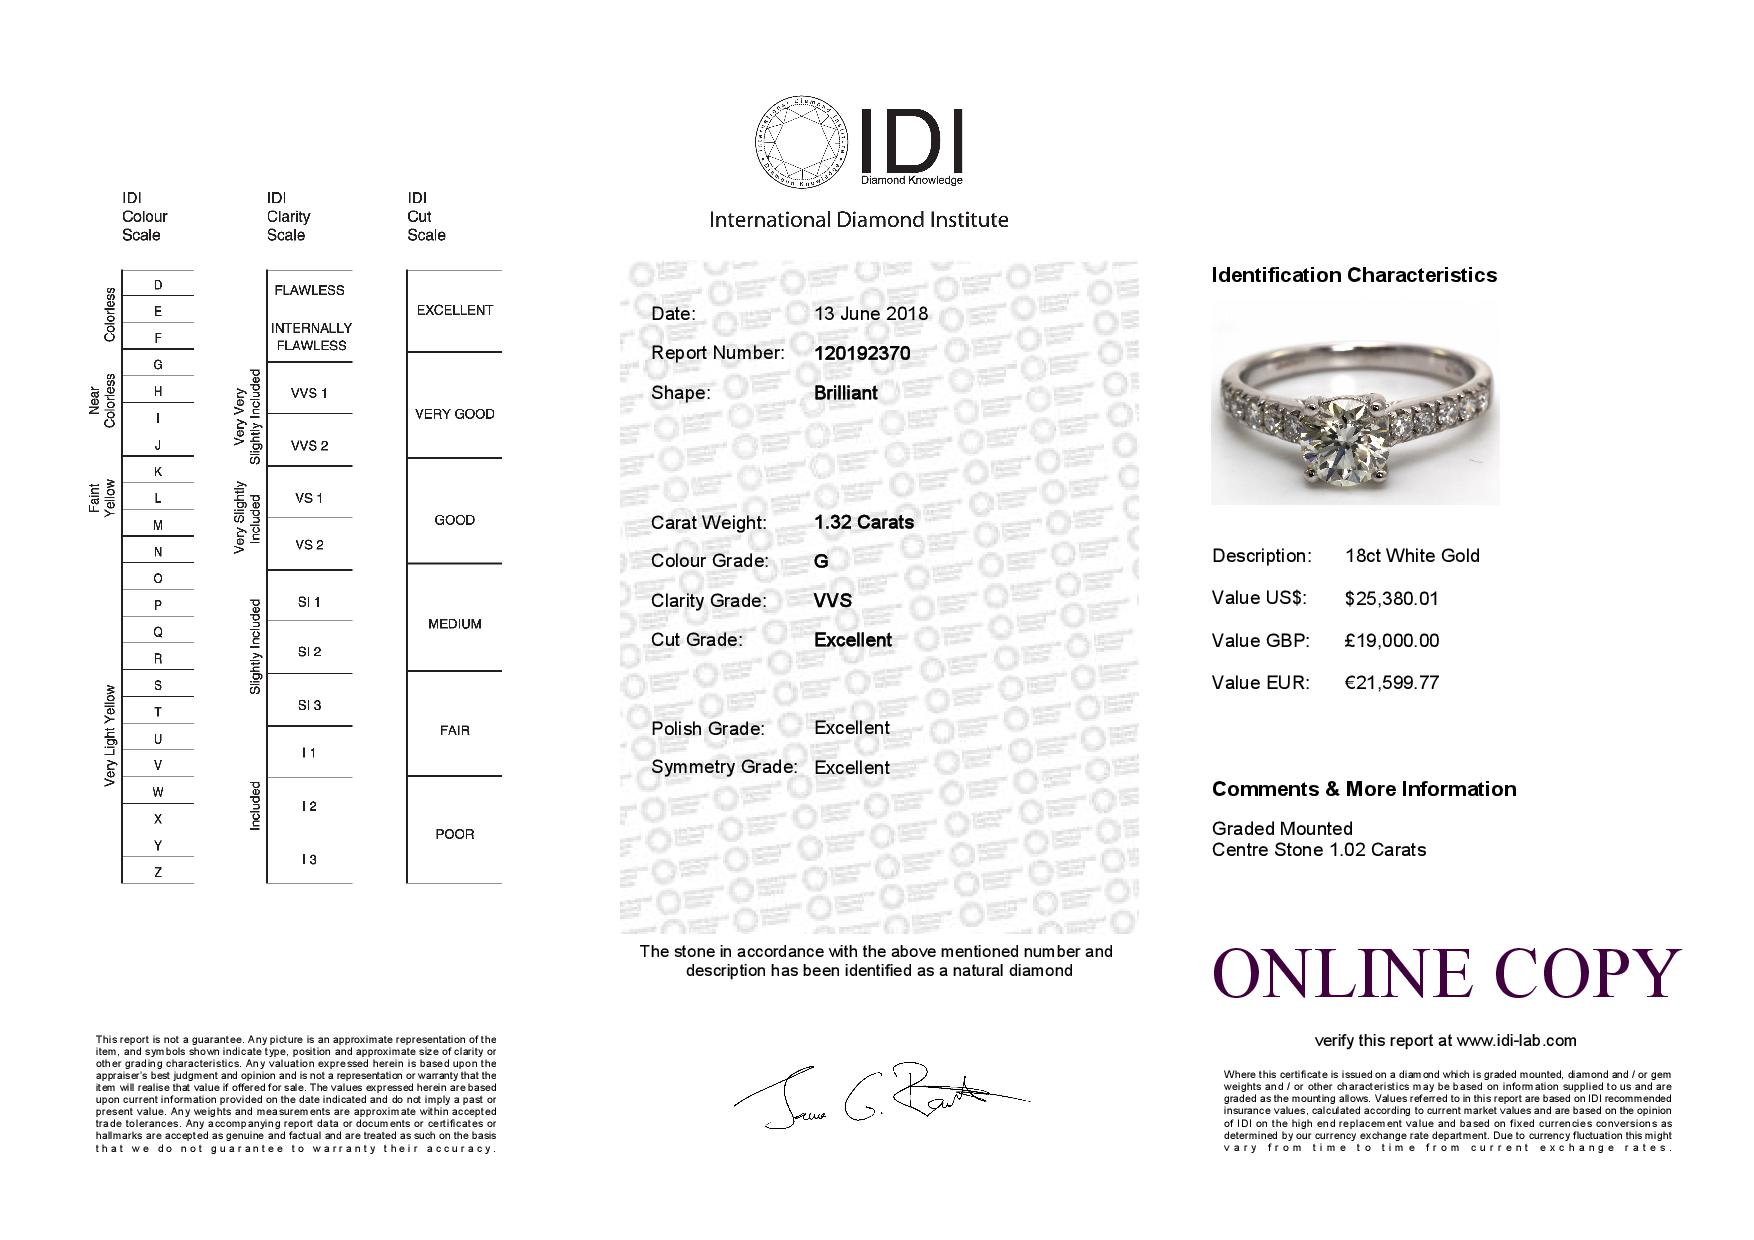 18ct White Gold Single Stone Diamond Ring With Stone Set Shoulders (1.02) 1.32 Carats - Image 5 of 5